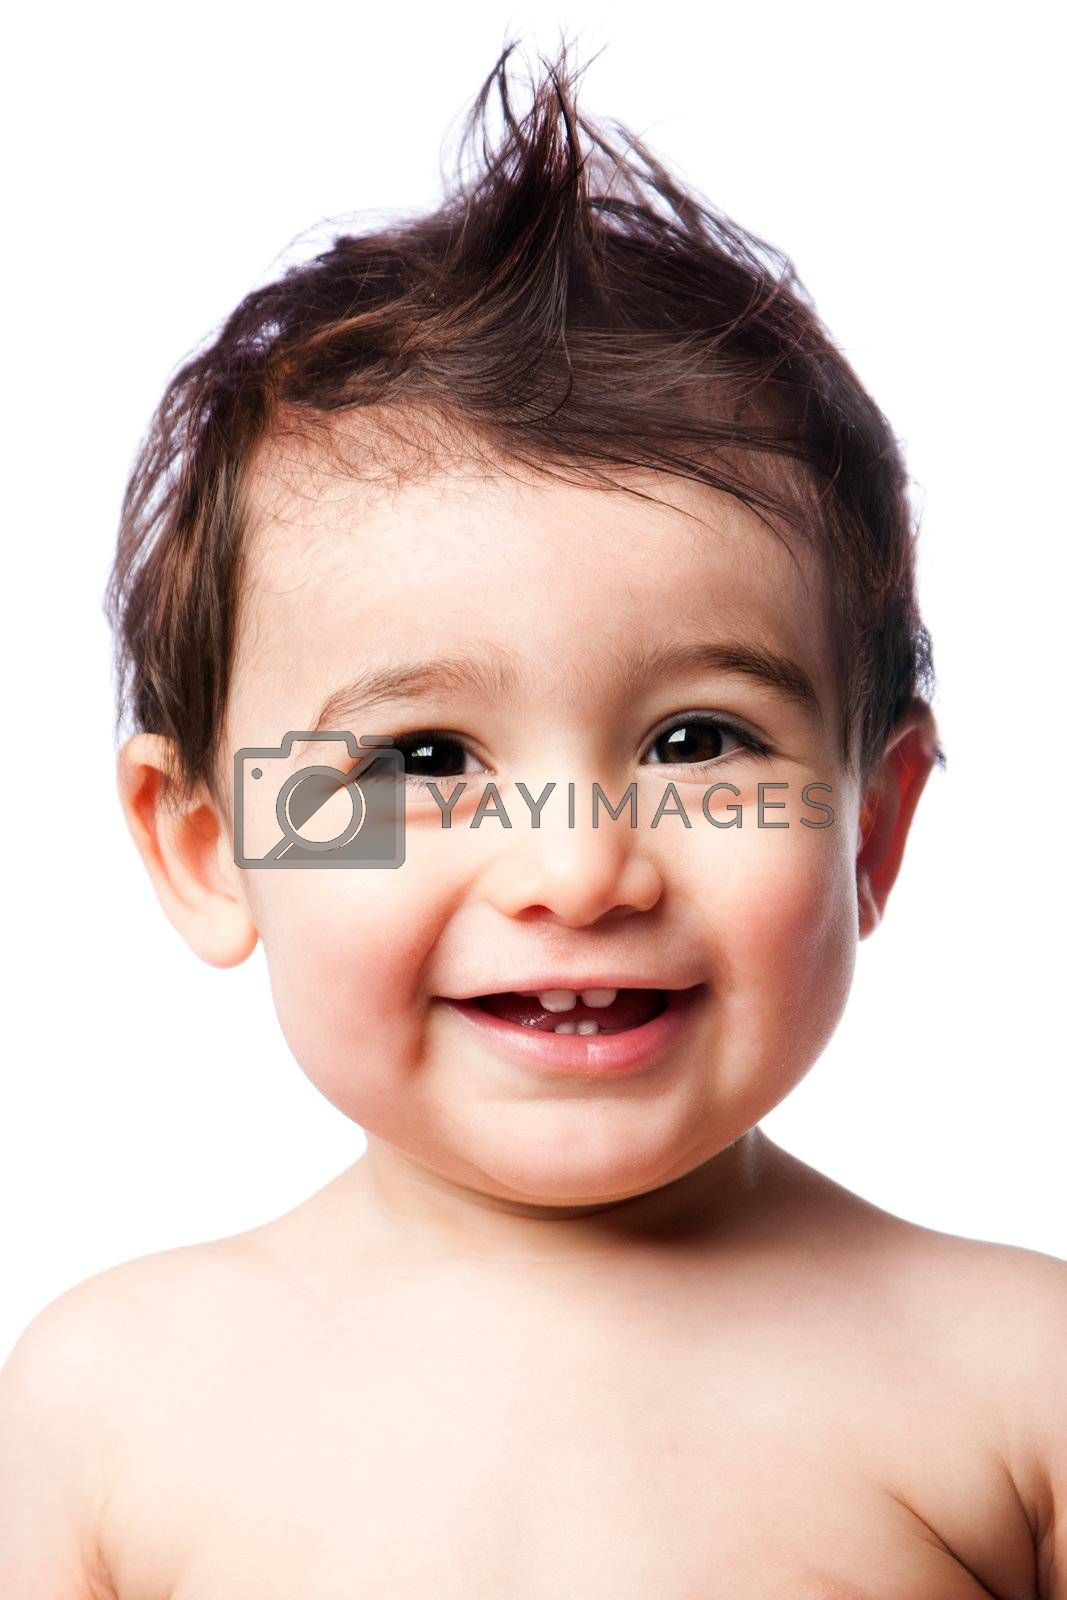 Cute happy smiling teething baby toddler with mohawk hairstyle, isolated.